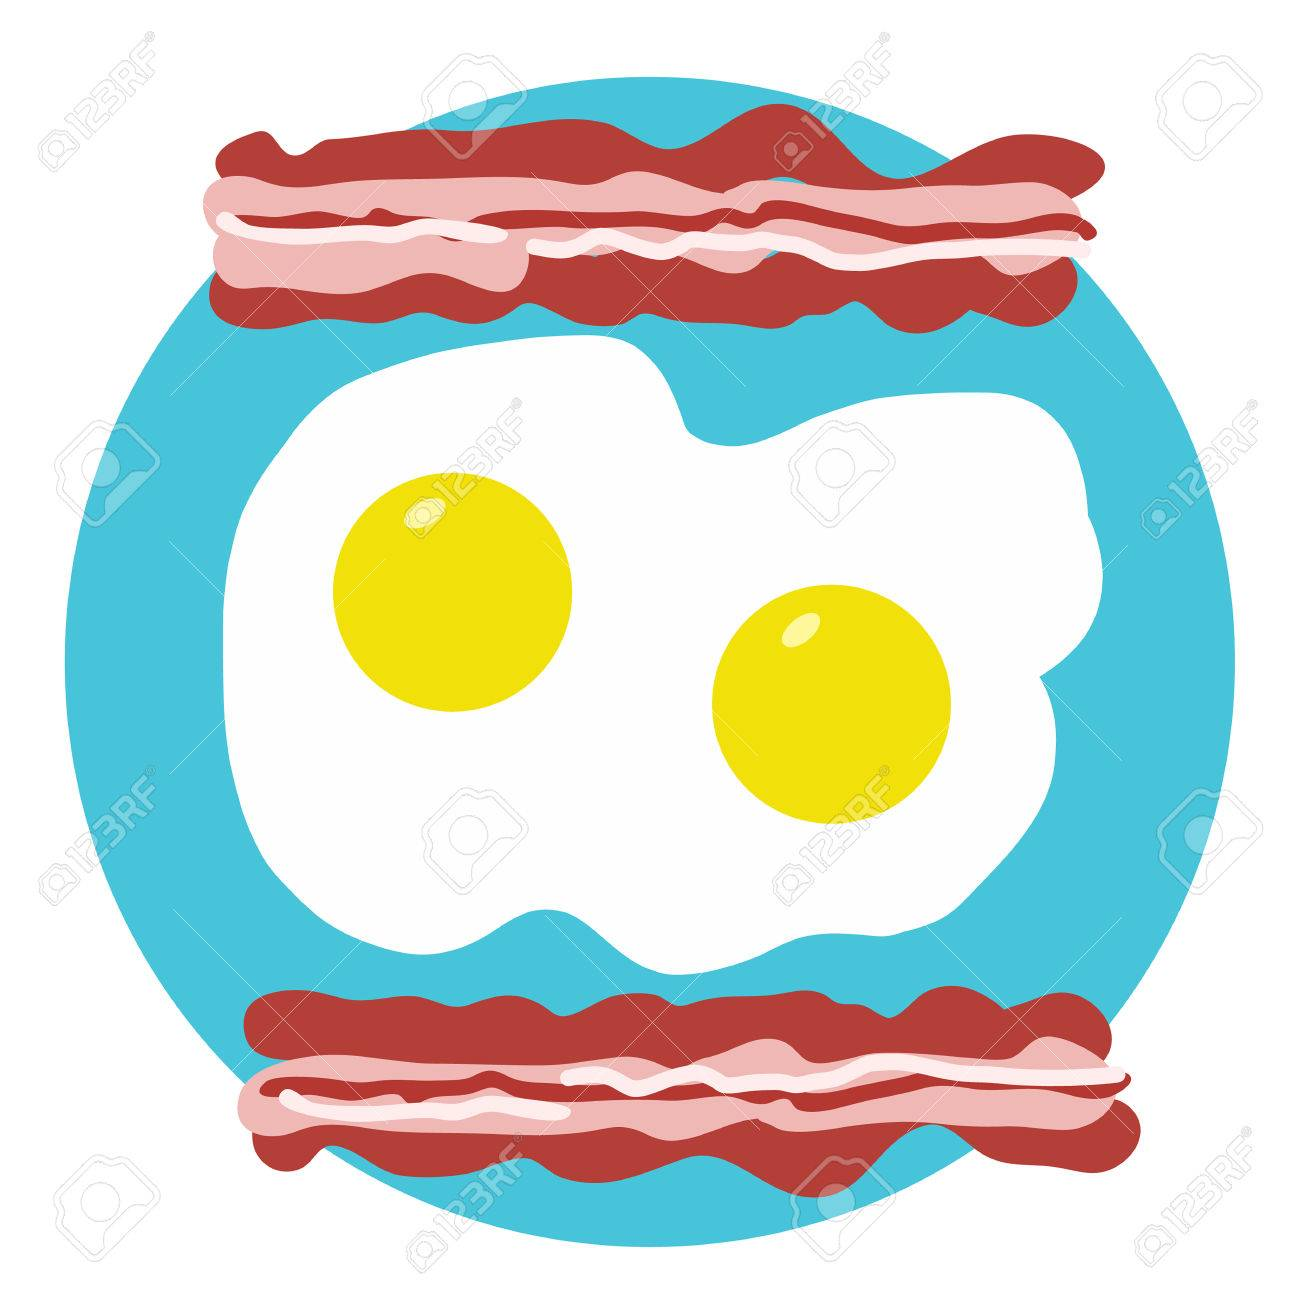 A stylized design of bacon and eggs on a turquoise circle background - 55361453